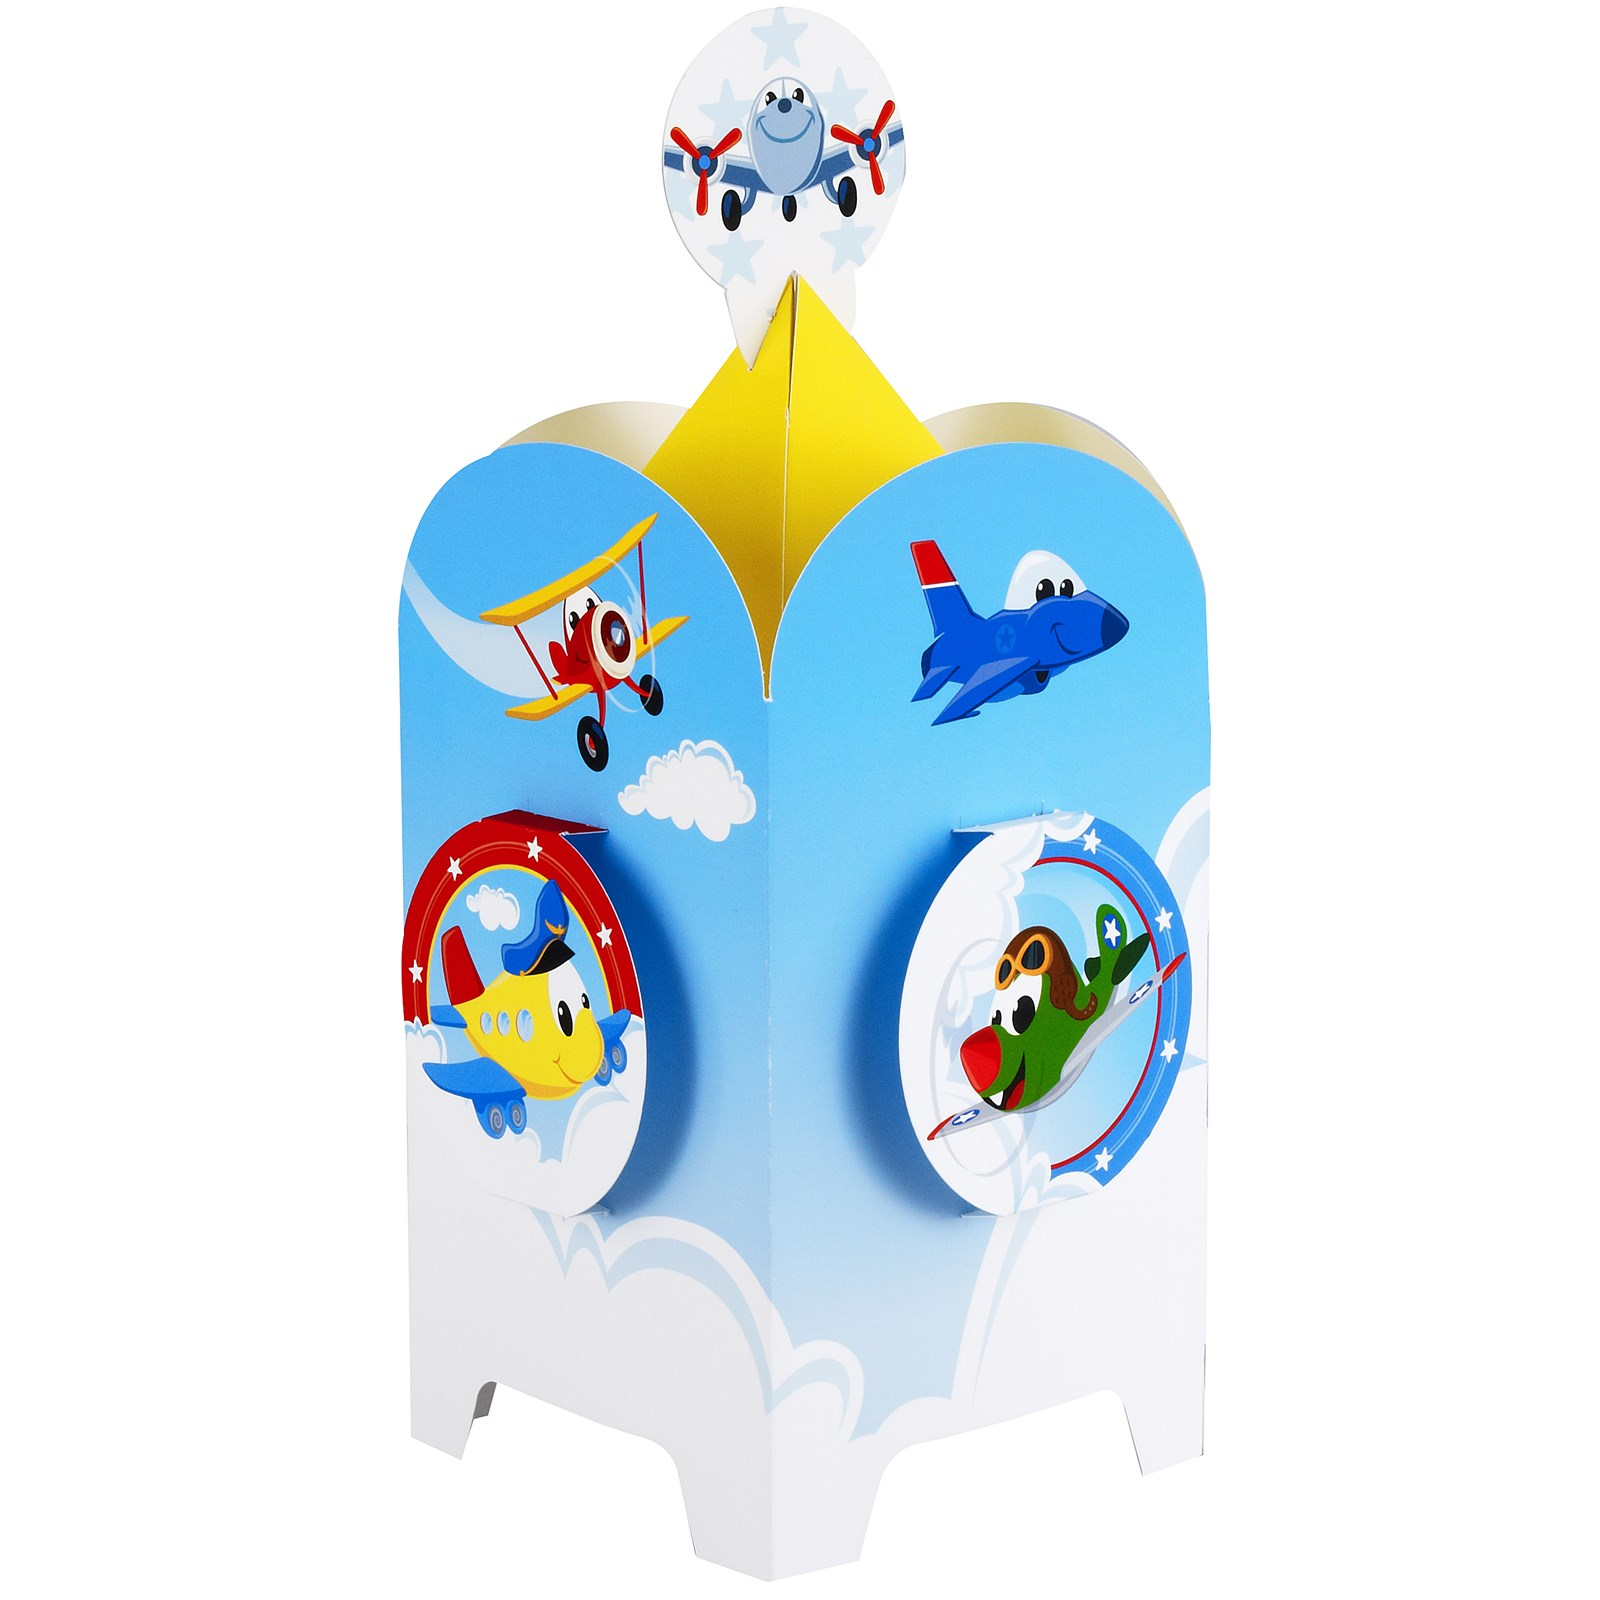 Airplane Birthday Party Get Ready For Takeoff: Airplane Adventure Centerpiece